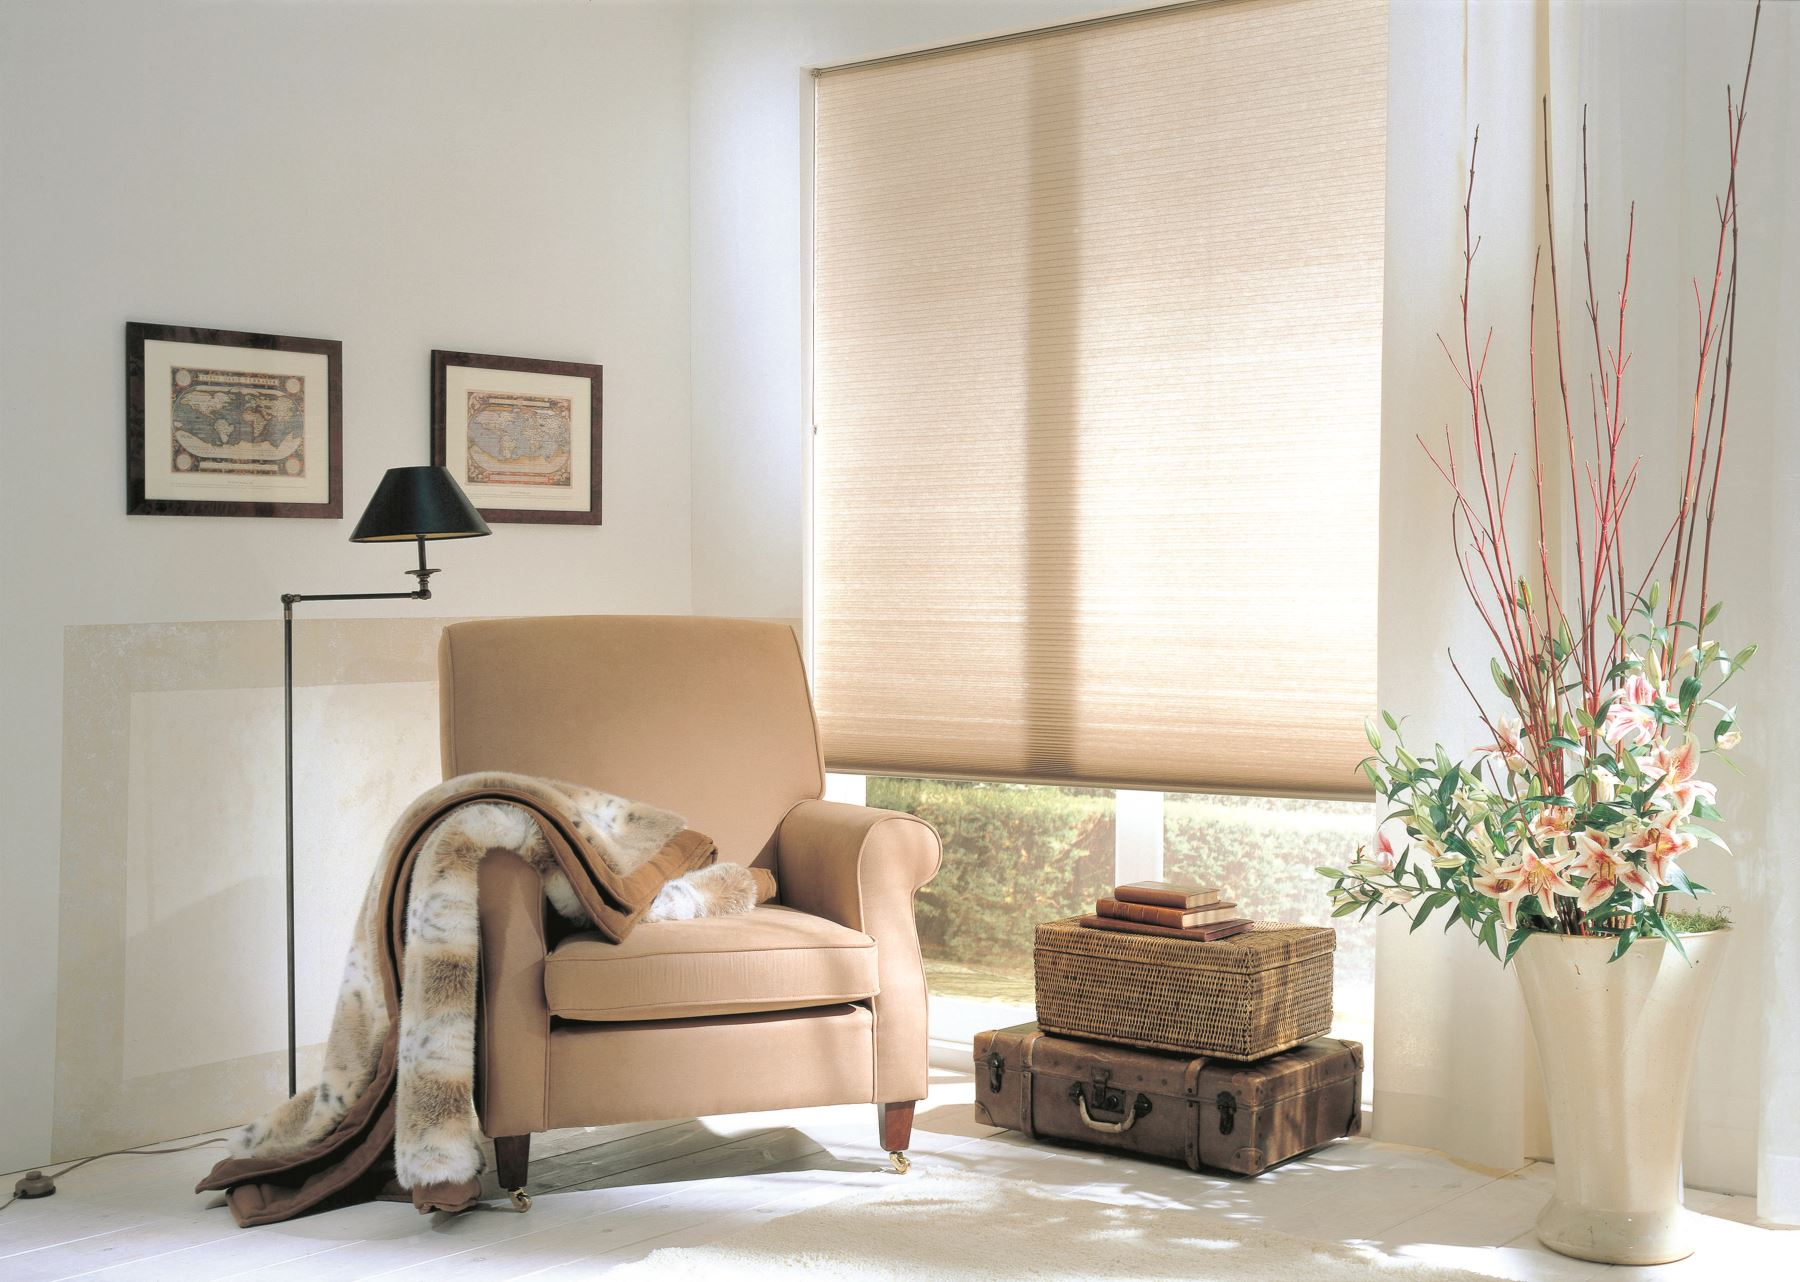 me plantation pin stores near door sliding blind modernize blinds shutters glass with your